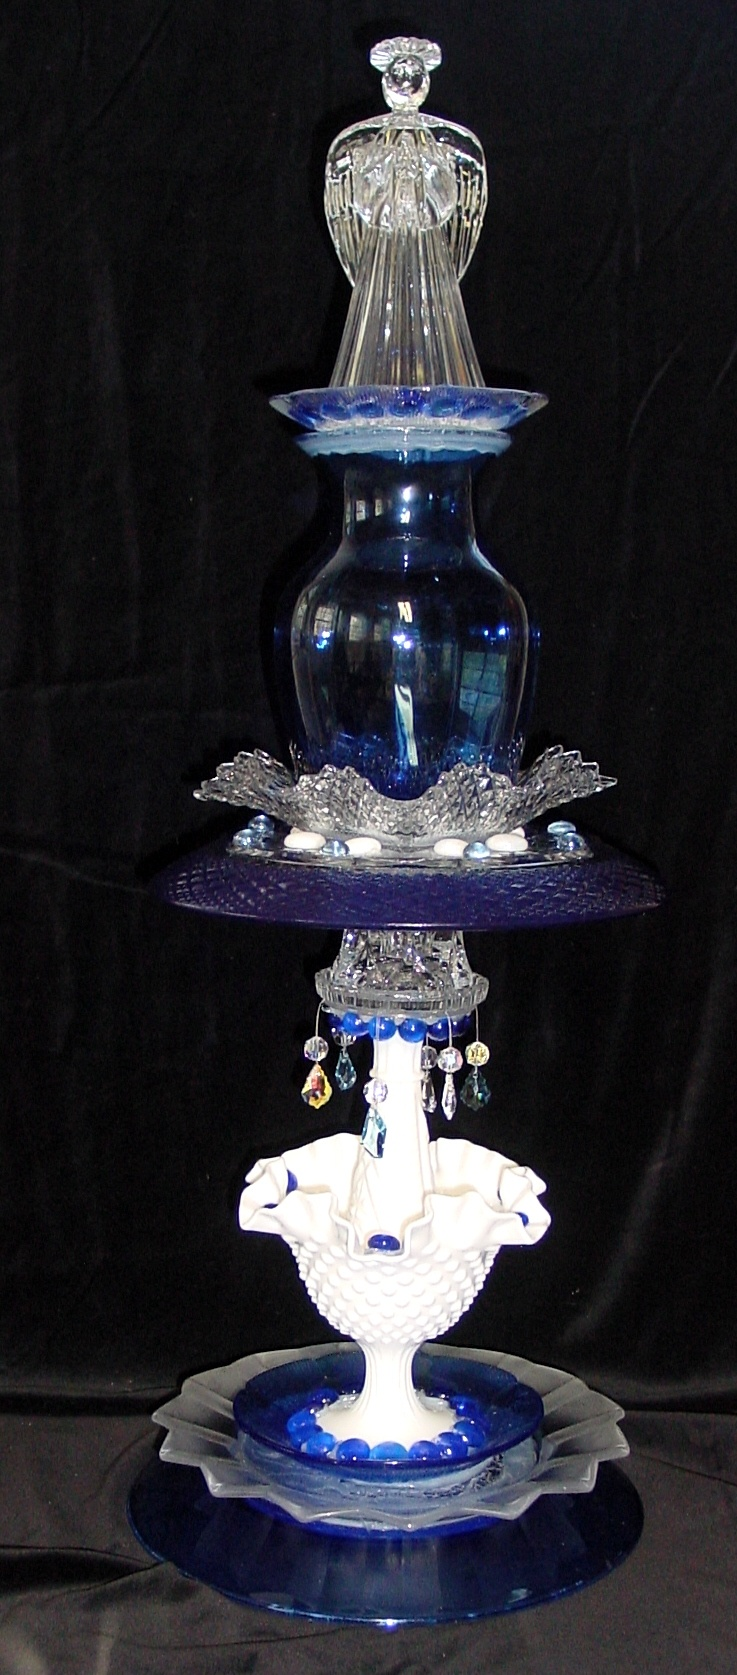 1000 images about repurposed glass on pinterest glass for Recycled glass garden ornaments